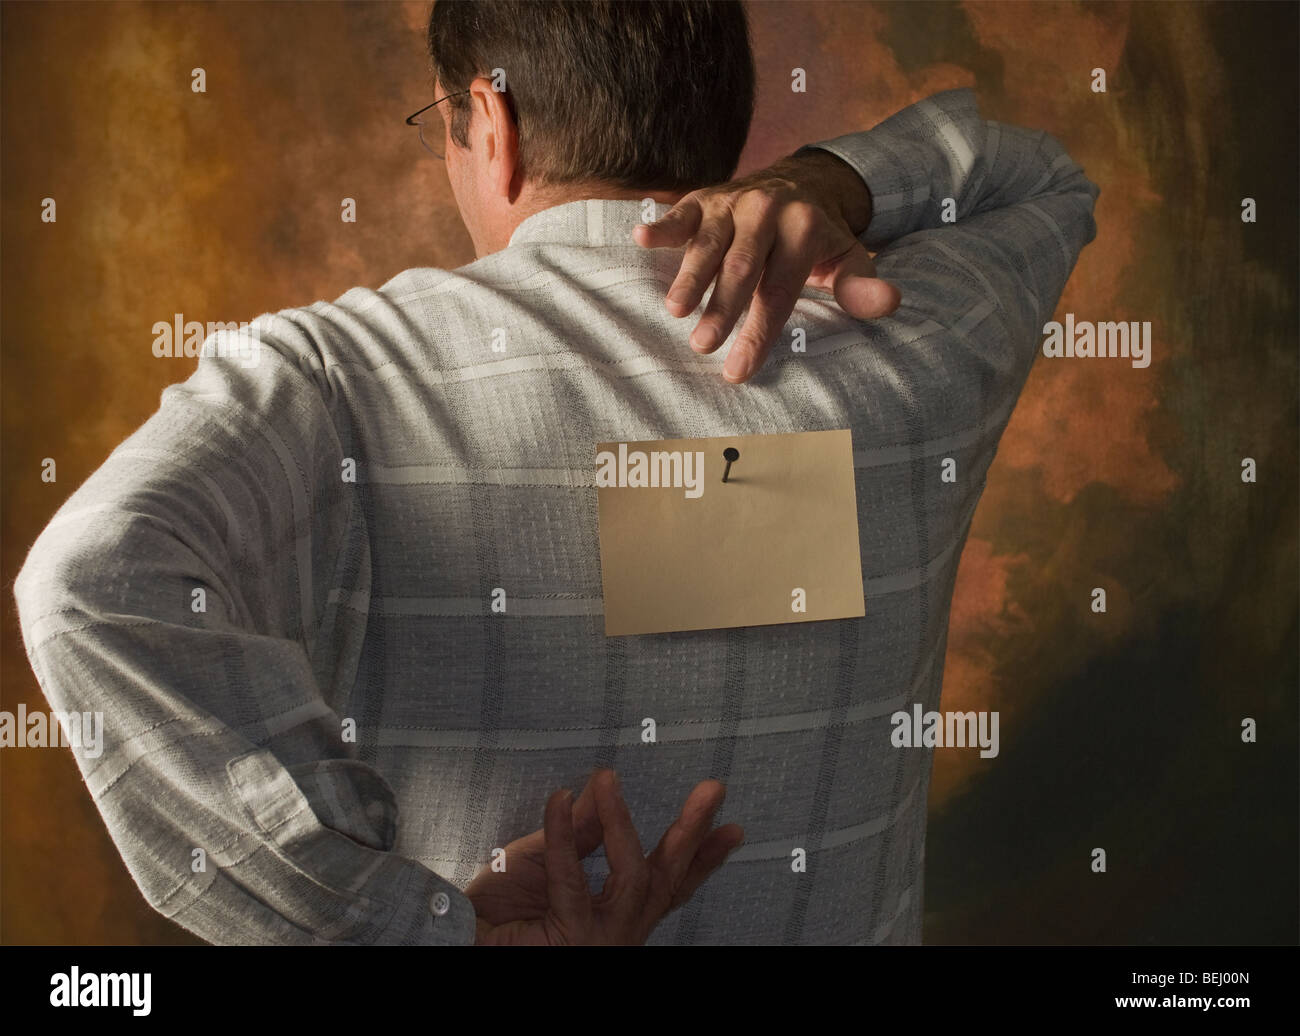 man reaching for note nailed to his back - Stock Image